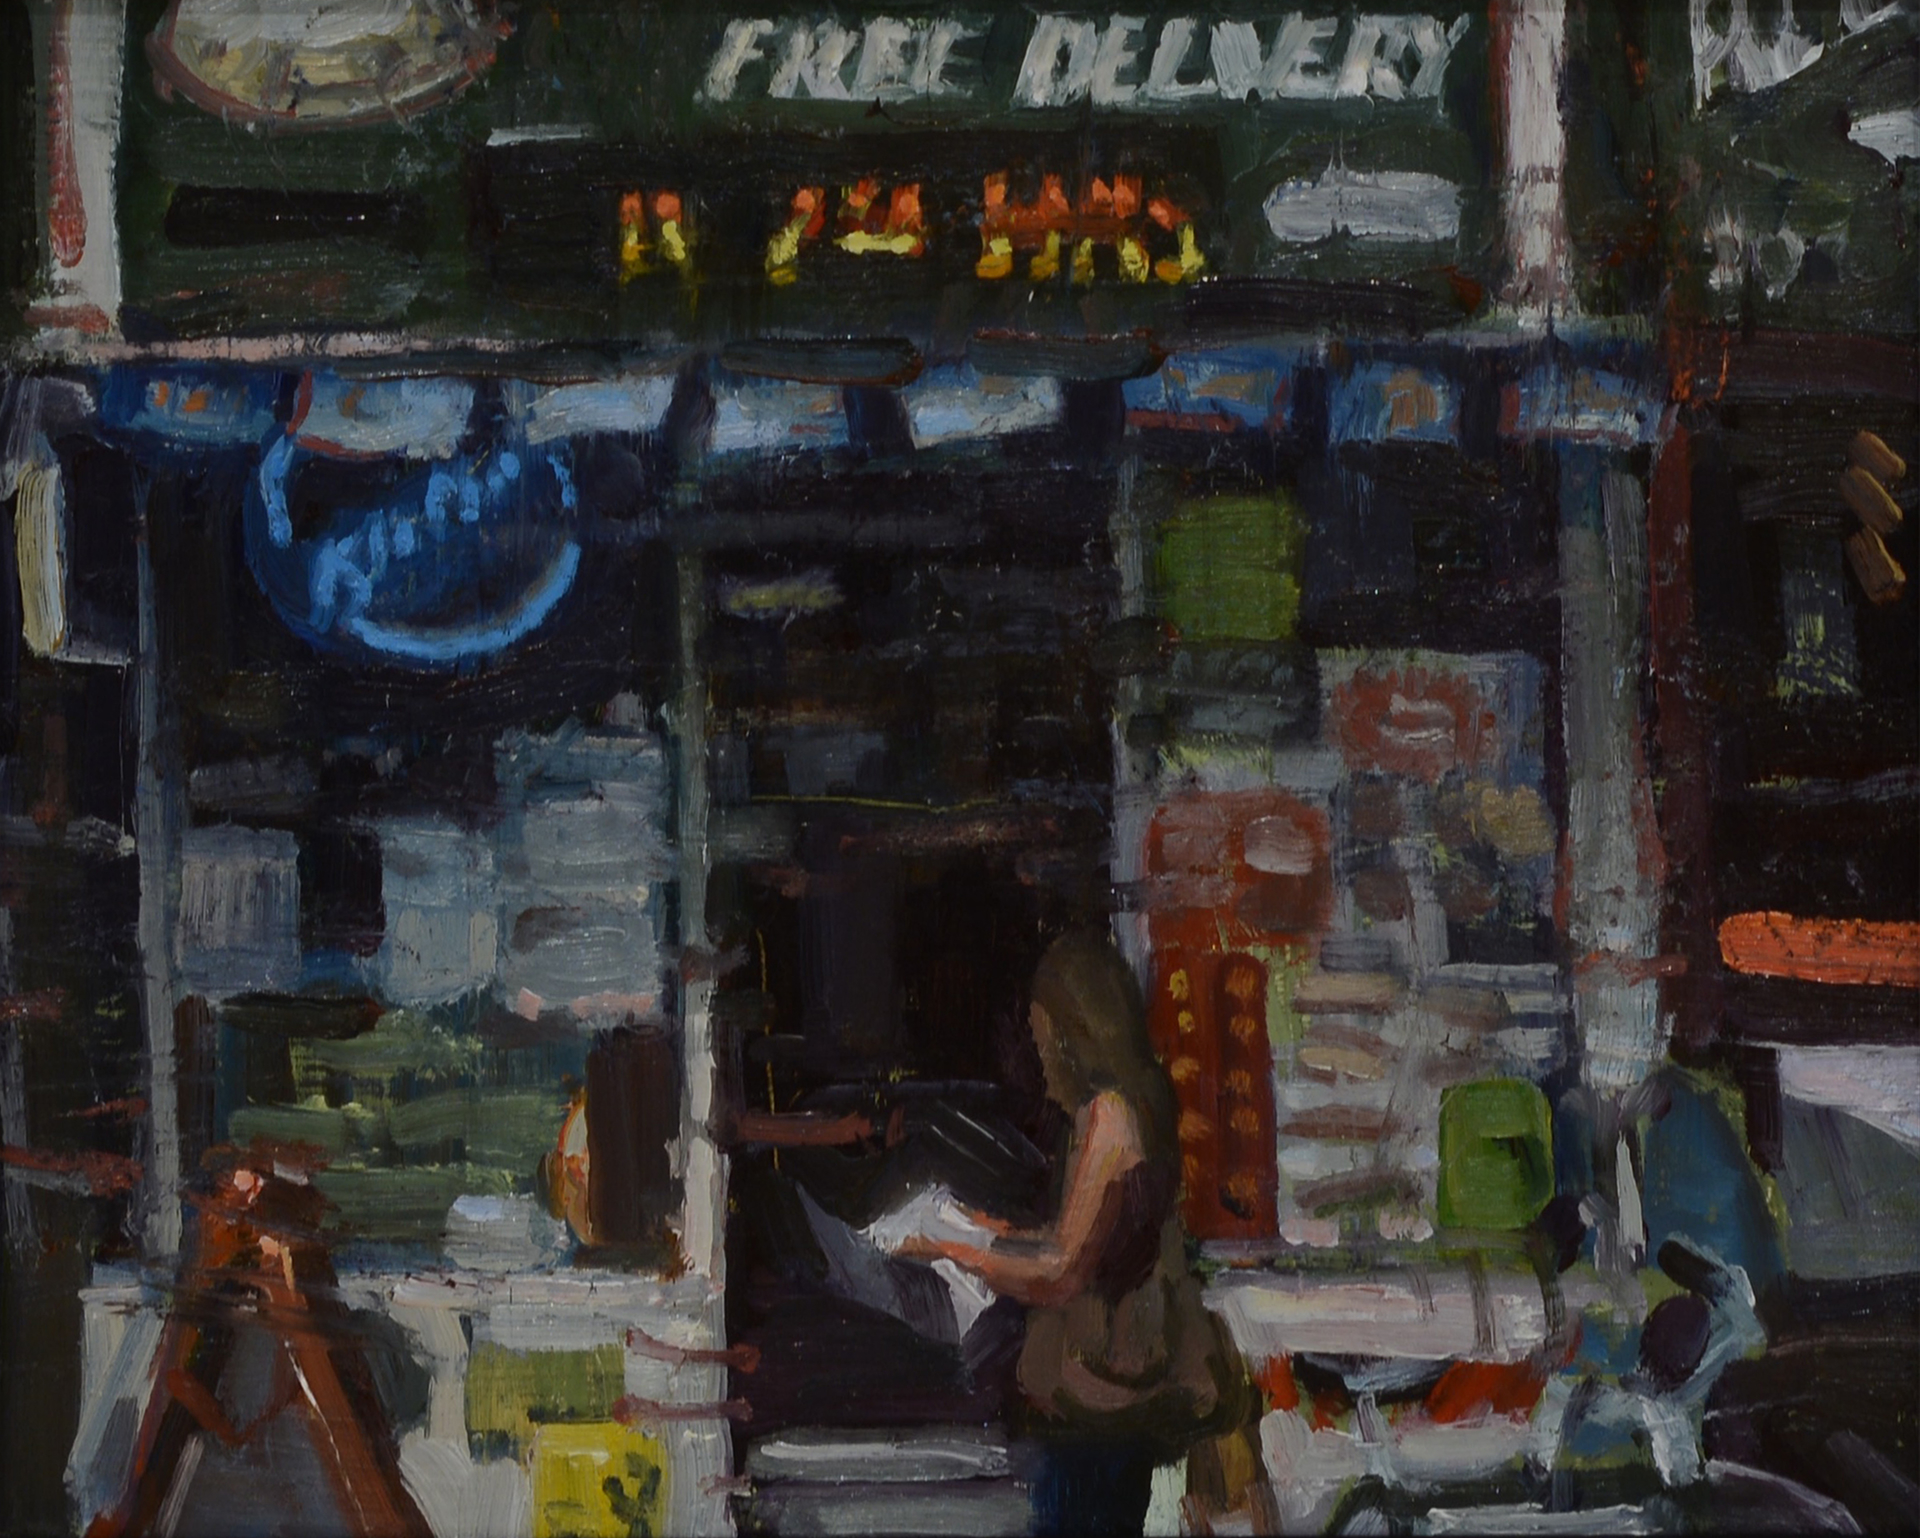 Free Delivery by Jim Beckner